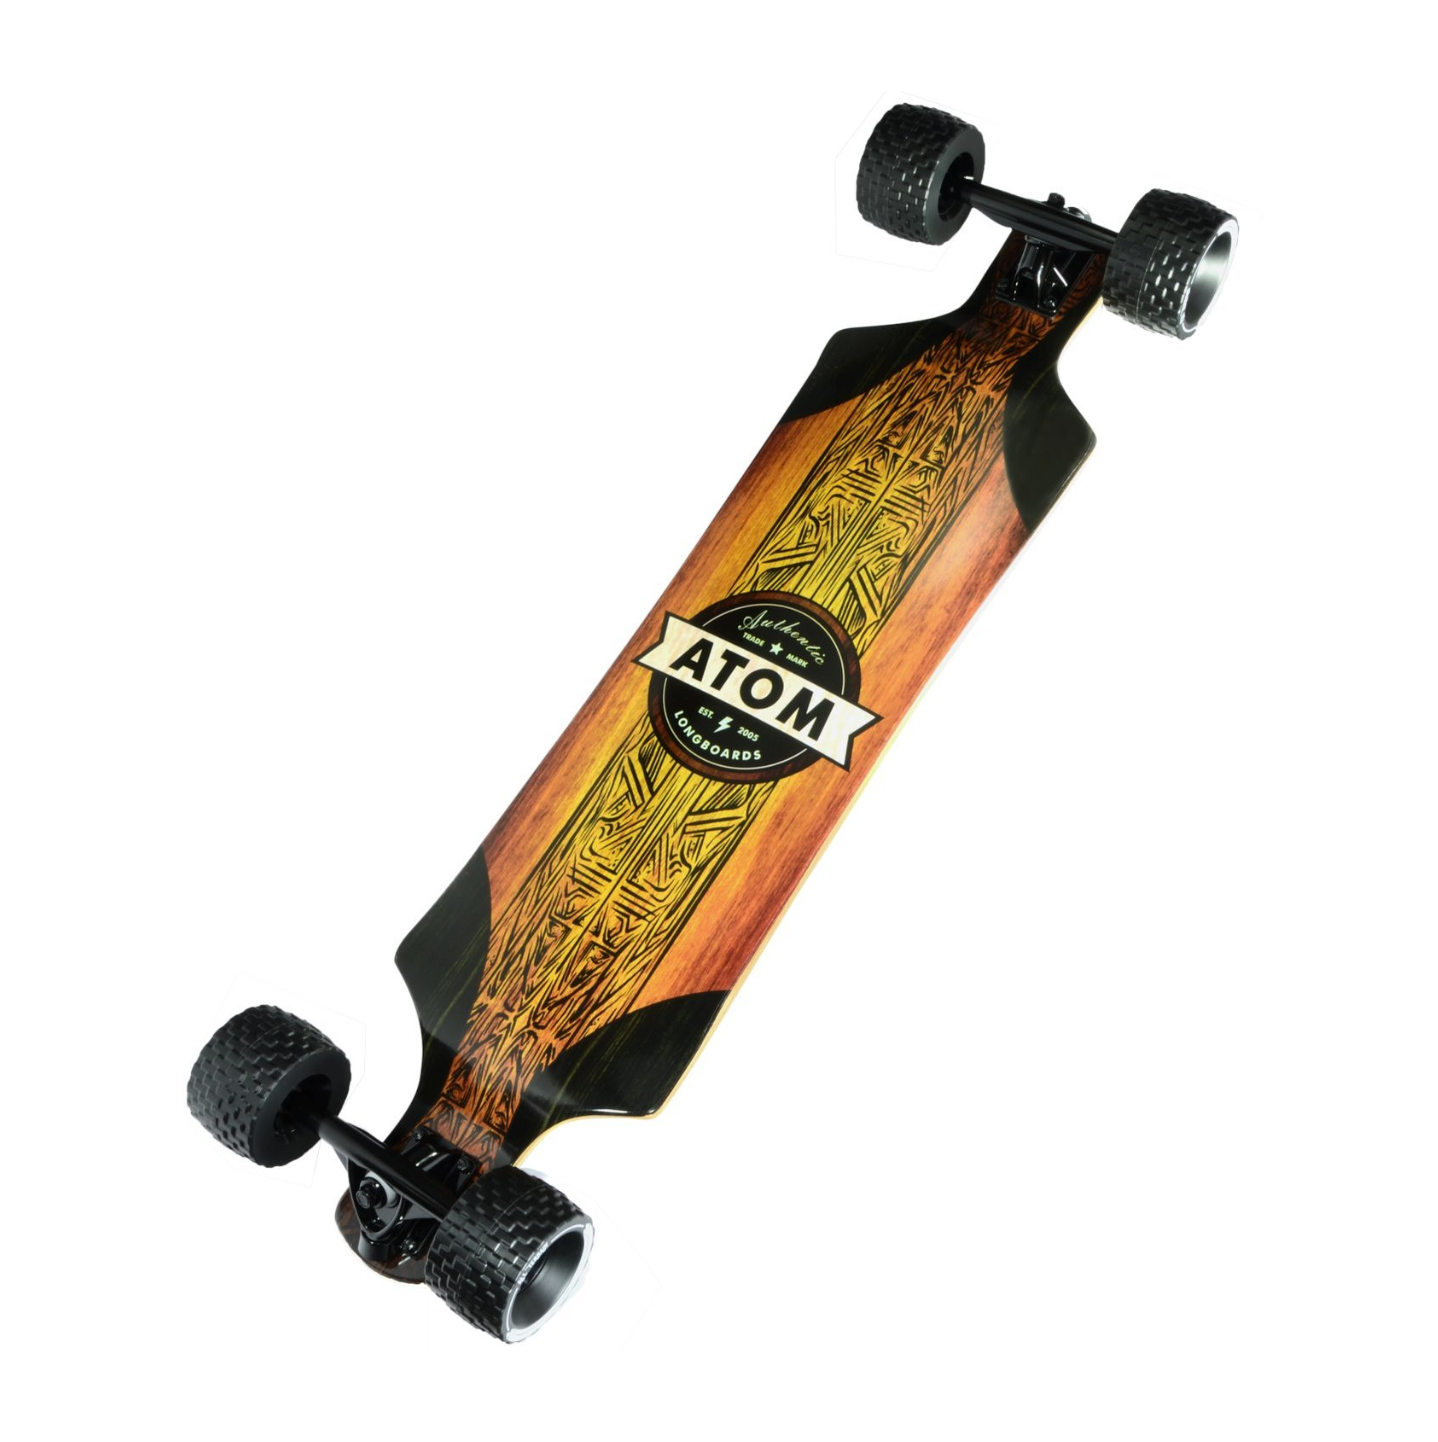 Image of Atom All-Terrain Drop Deck Longboard - 39""